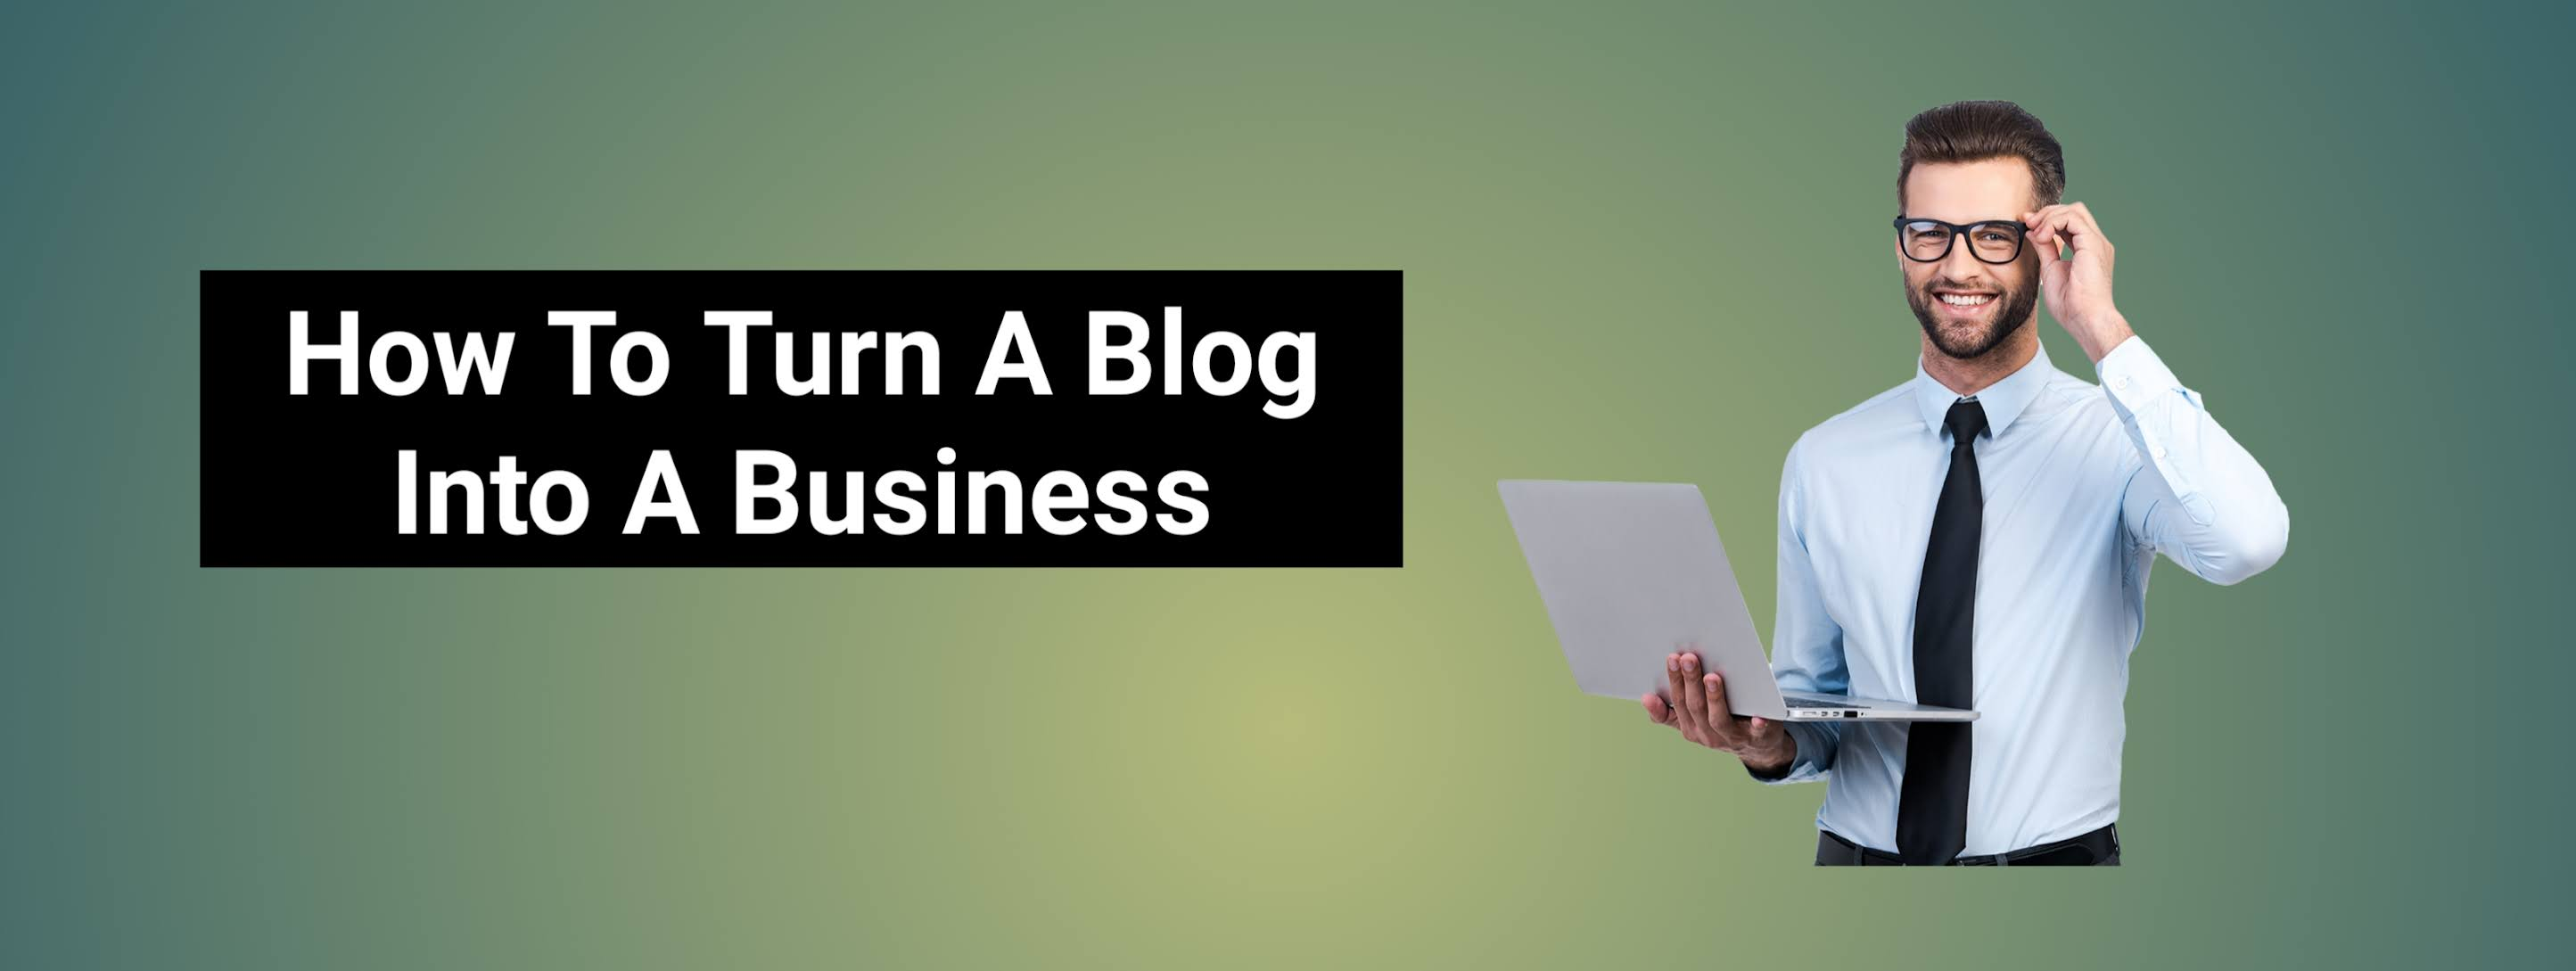 How To Turn A Blog Into A Business